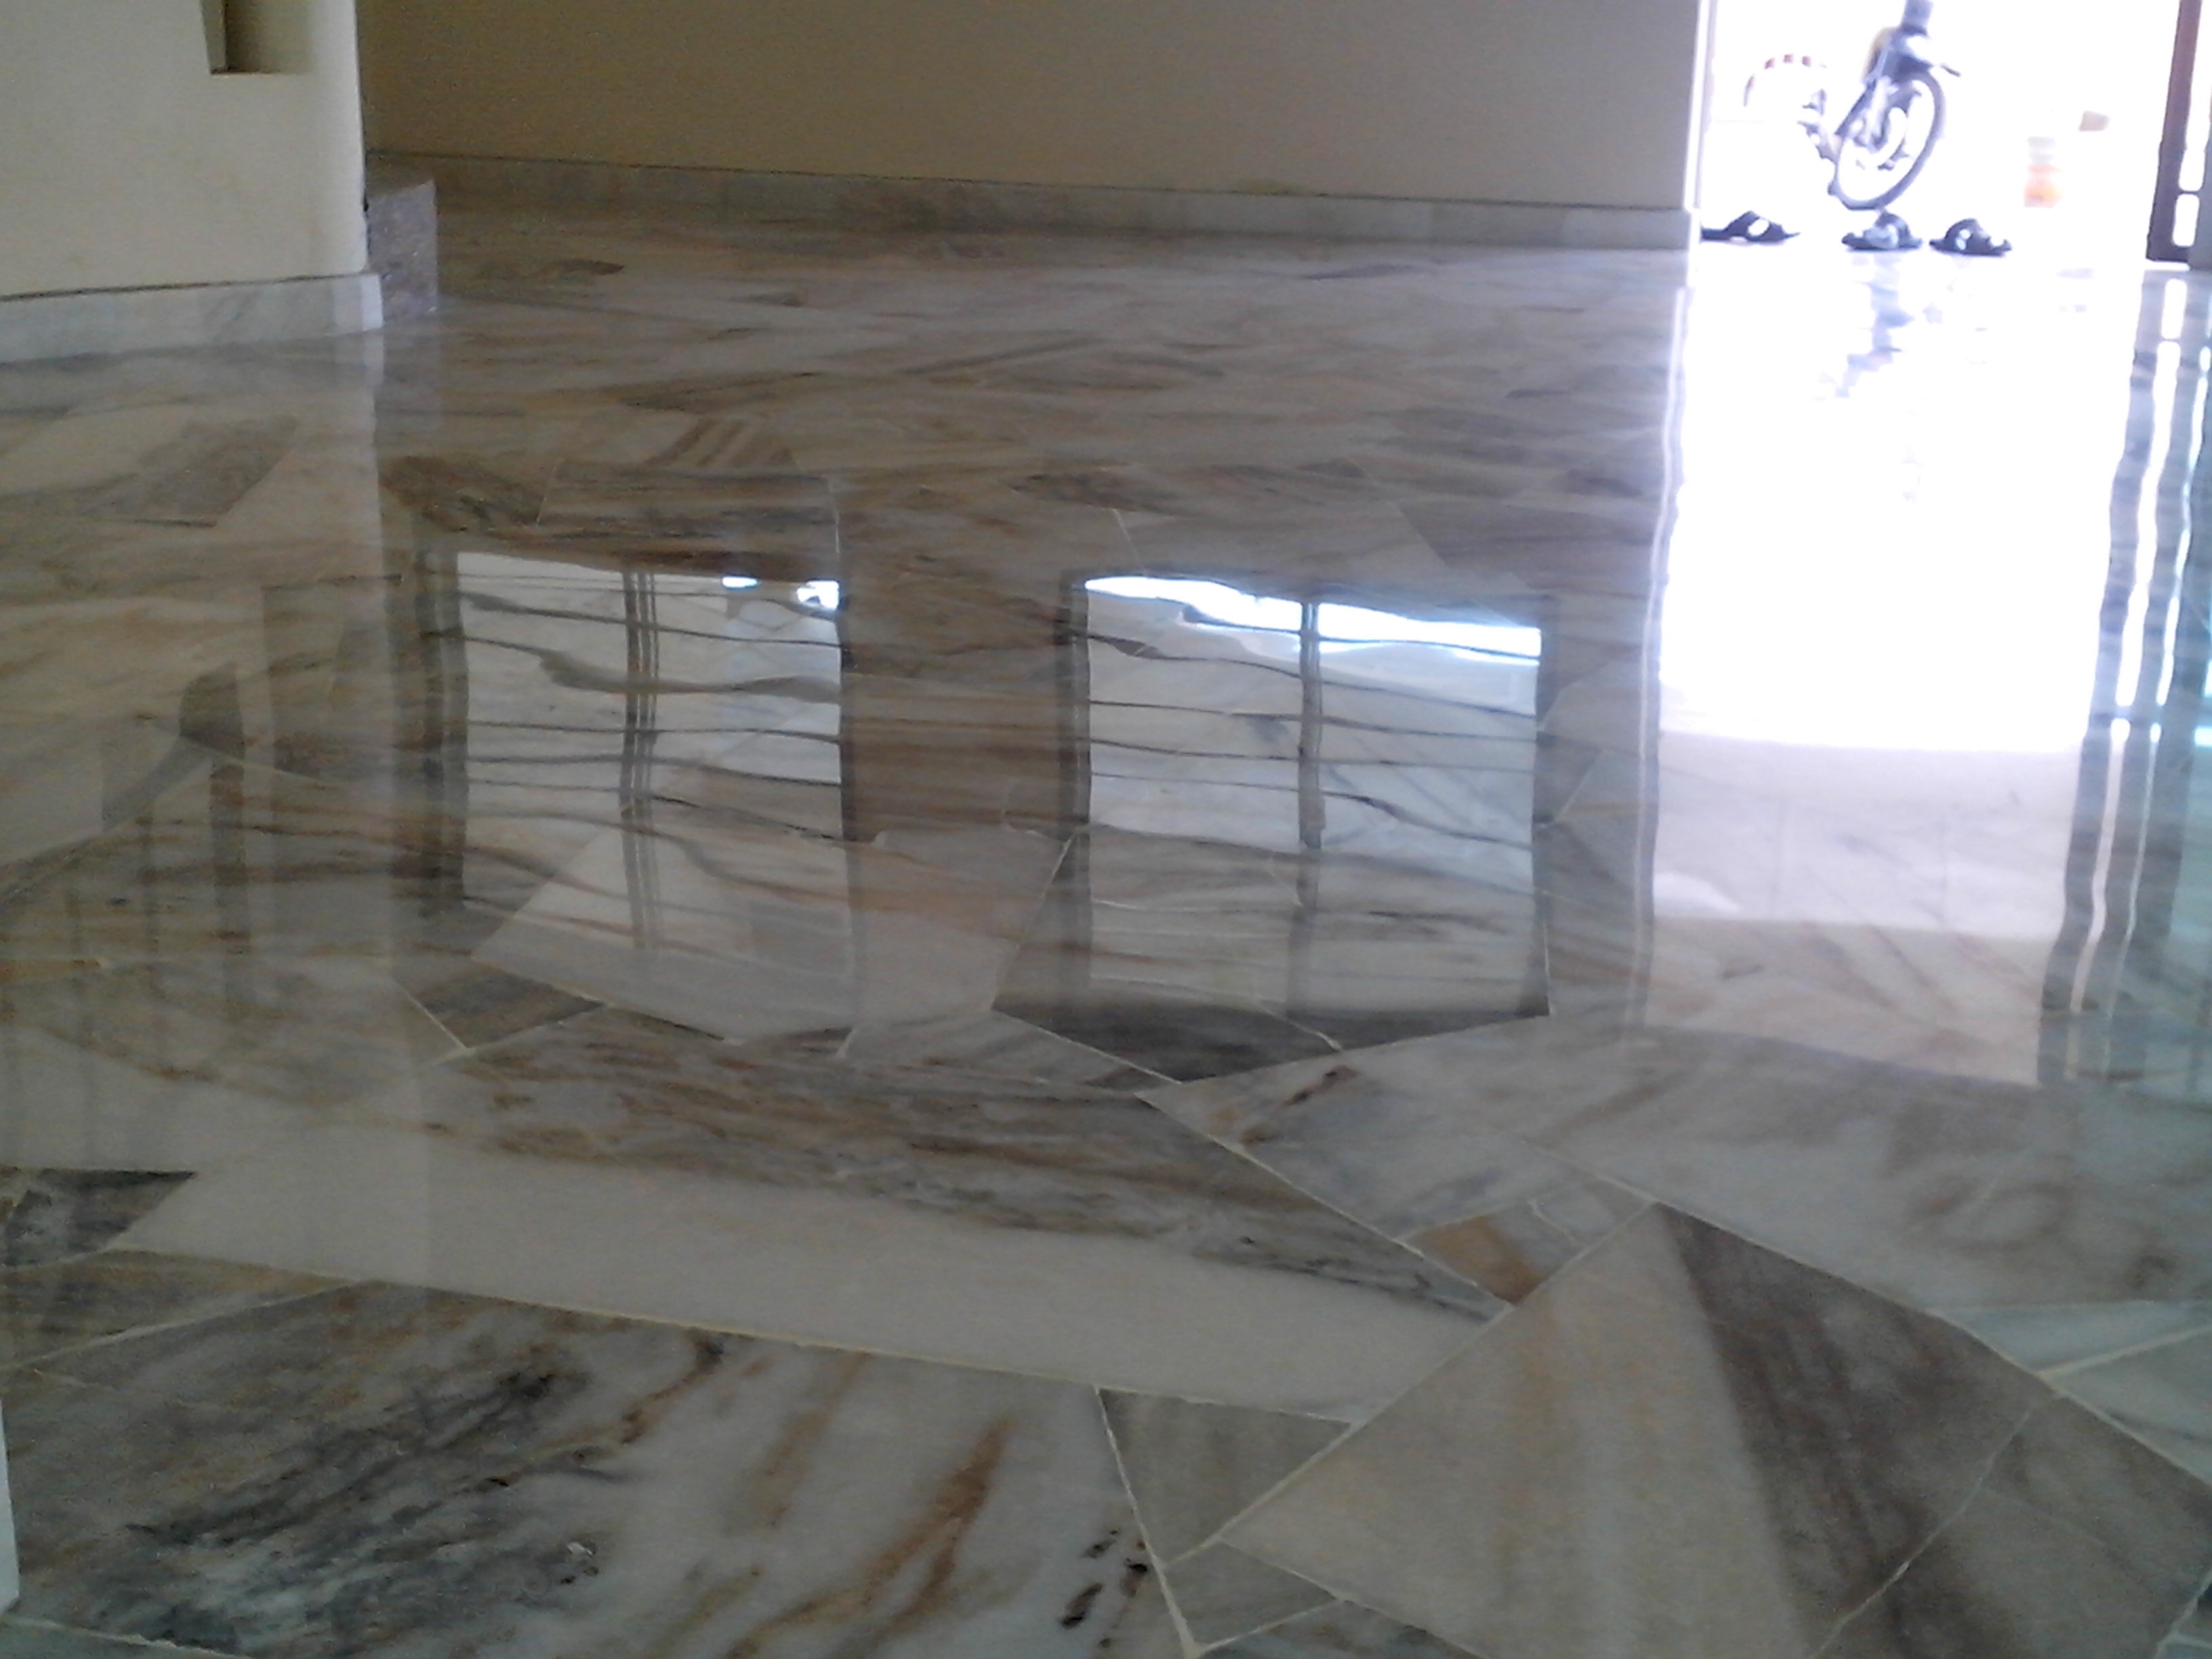 Marble floor restoration done properly simply floor care why choose us dailygadgetfo Images